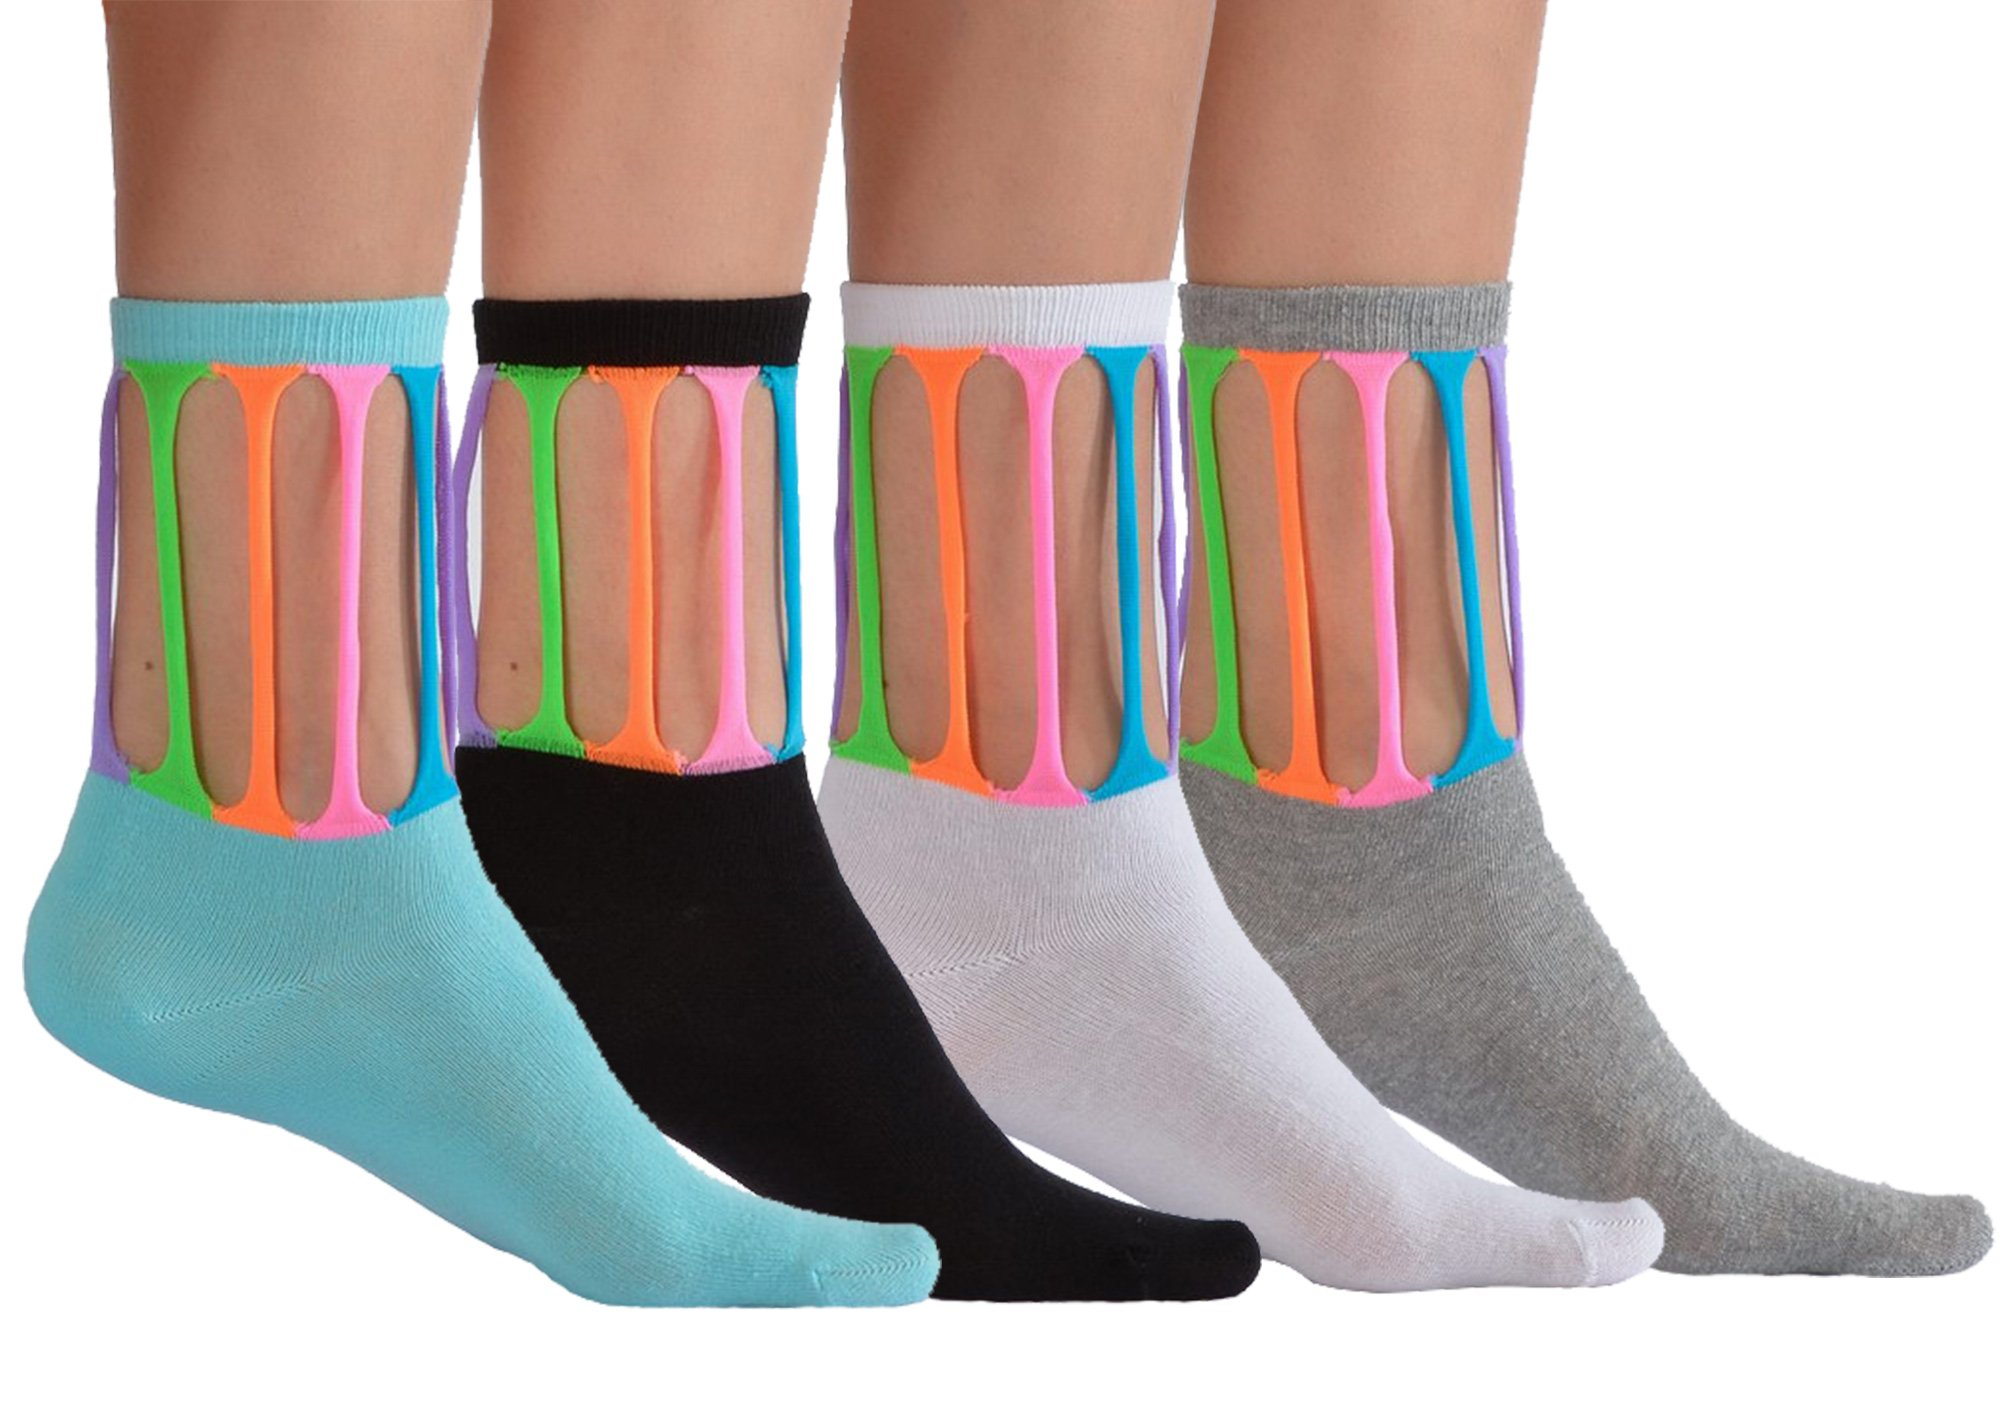 4 Pairs Pack Colorful Design Novelty Crazy Fun Socks For Girls by Softy Socks (Large/10 Years+/Shoe Size 6-9, 4 Pack (White,Black,Blue,Grey))